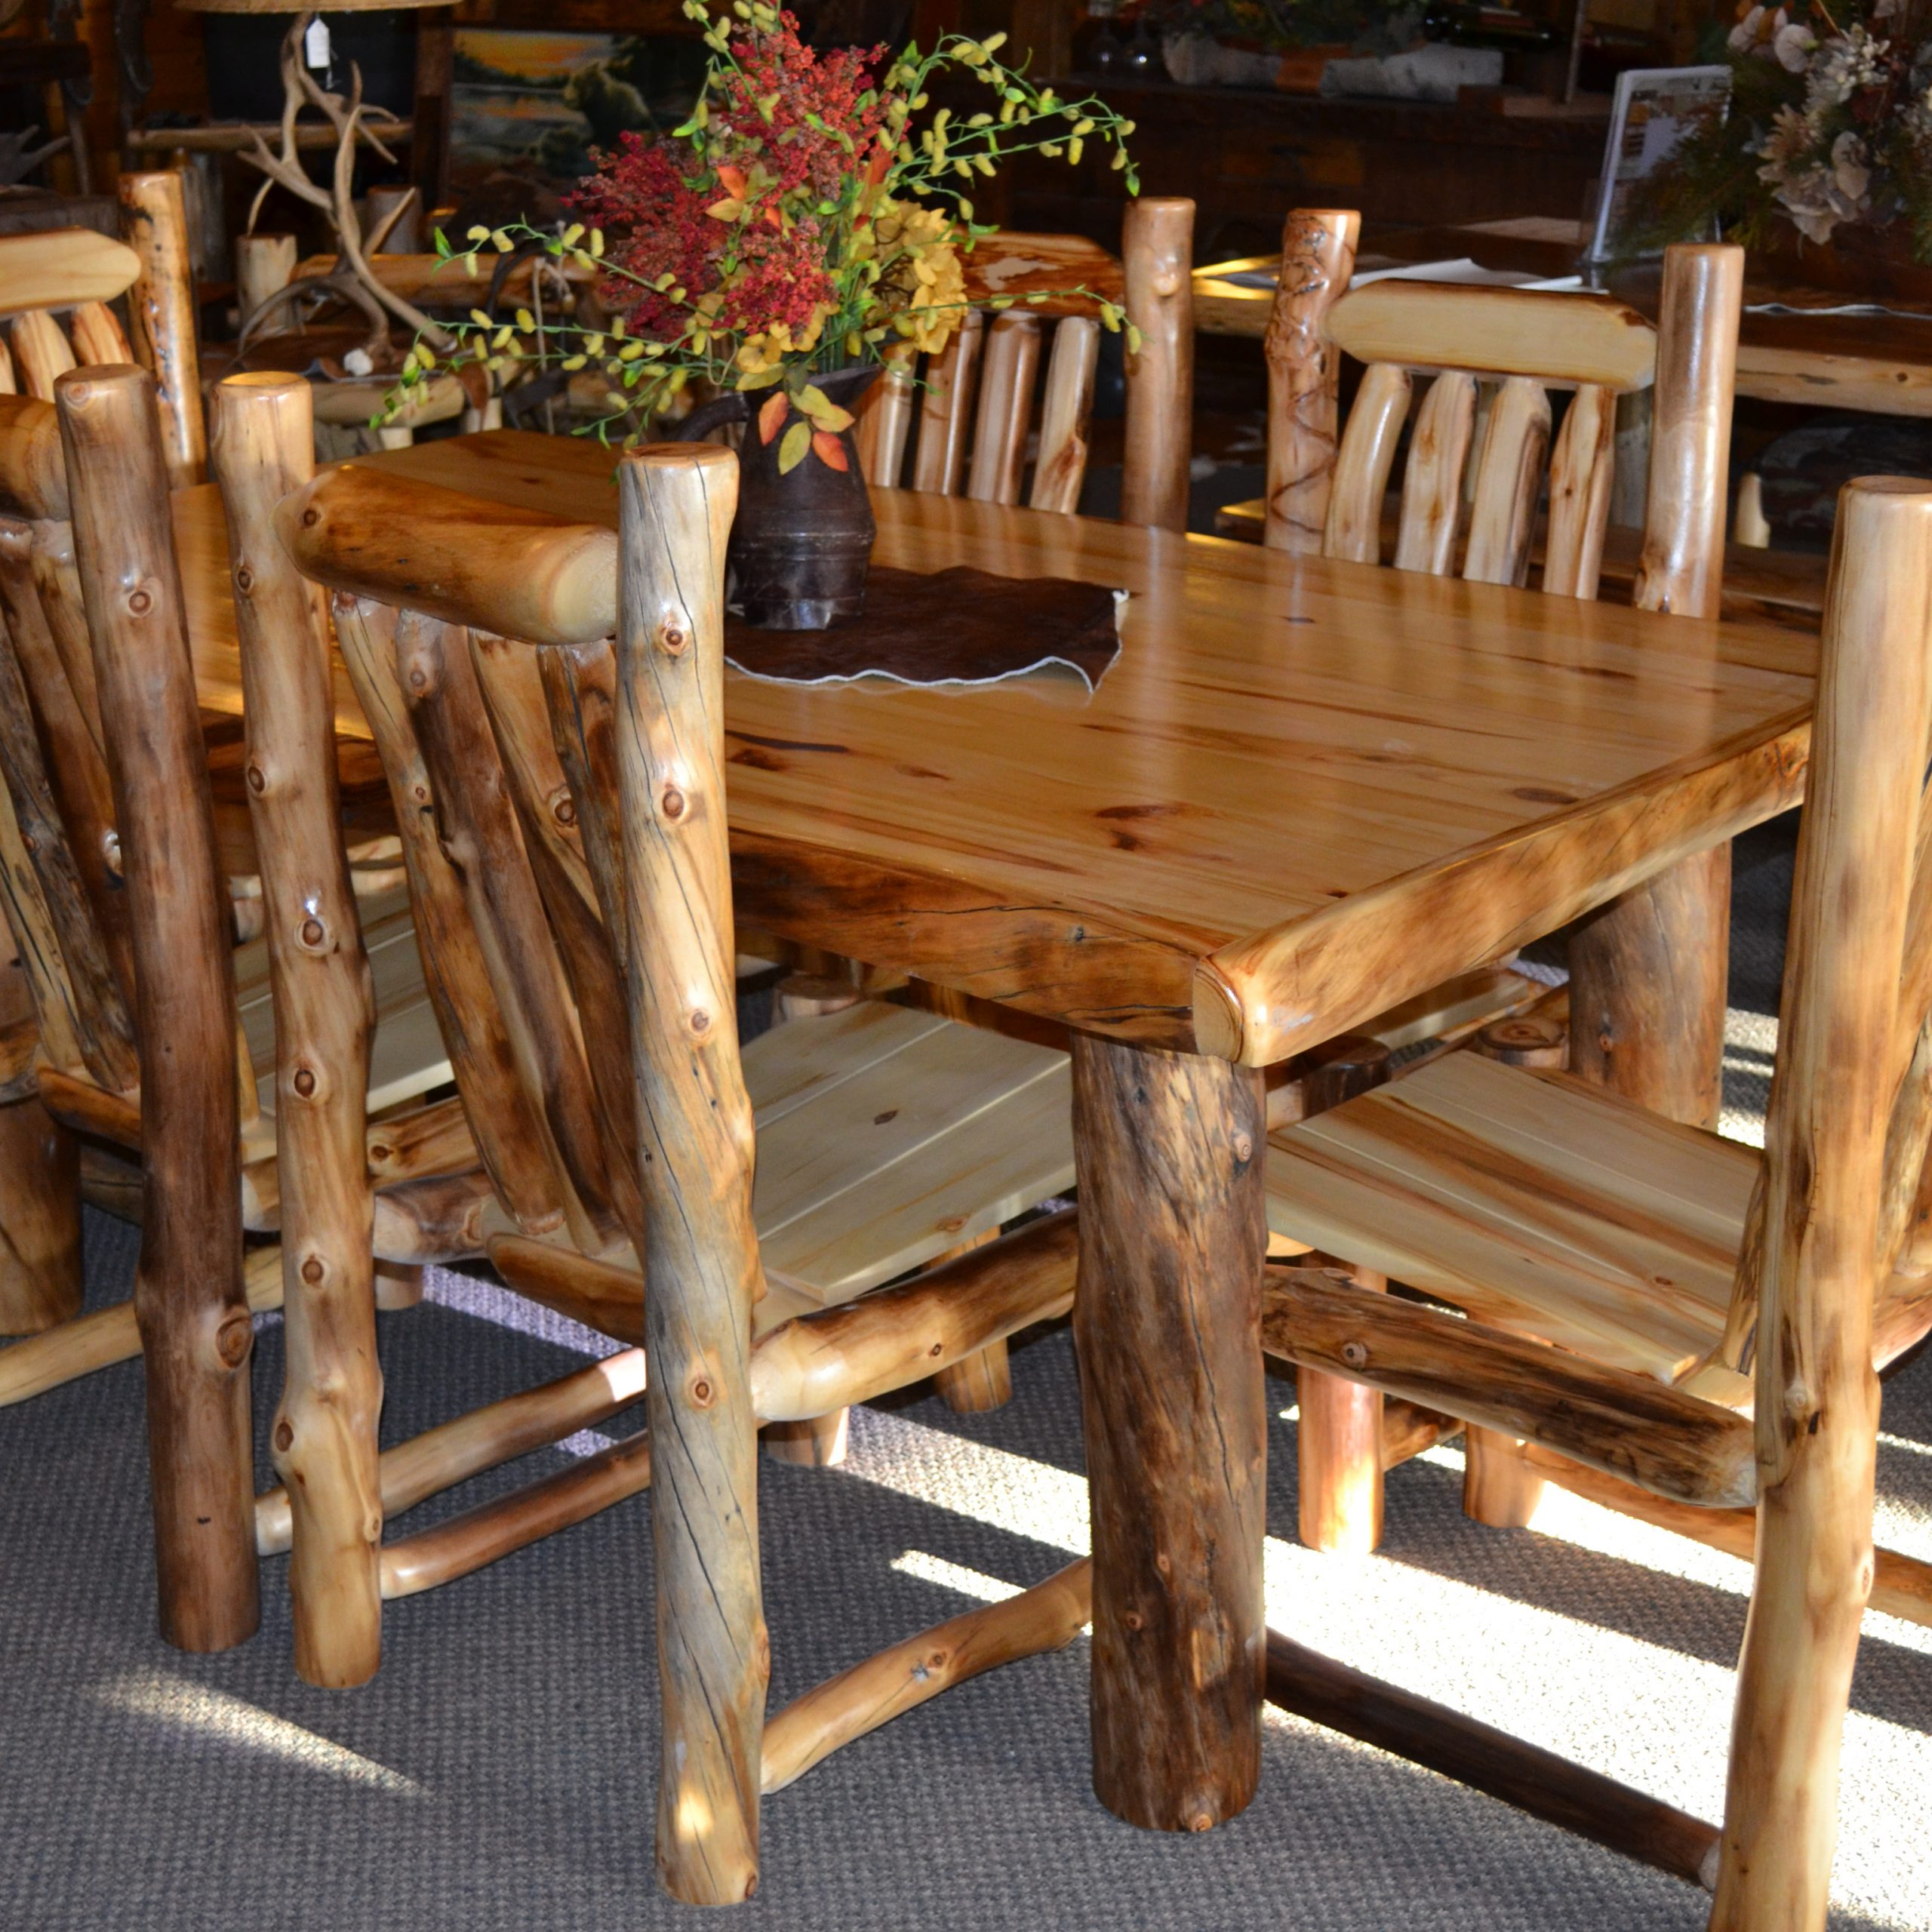 Favorite Small Rustic Look Dining Tables For For Dimensions Chandelier Big Inches Sets Length Everyd (View 7 of 25)